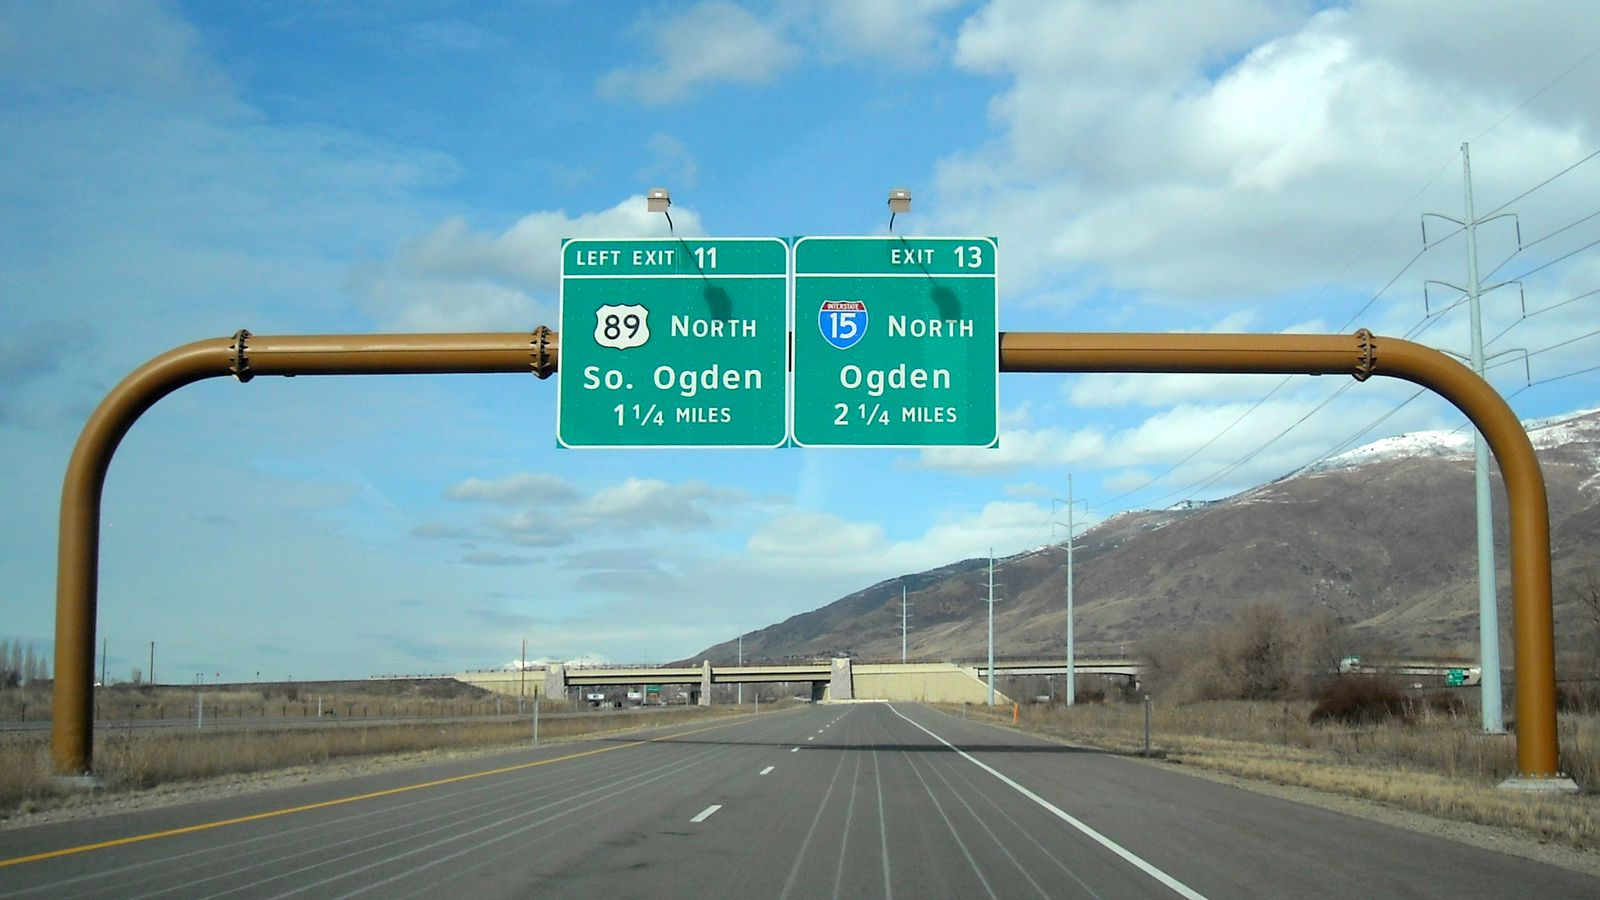 Highway signs